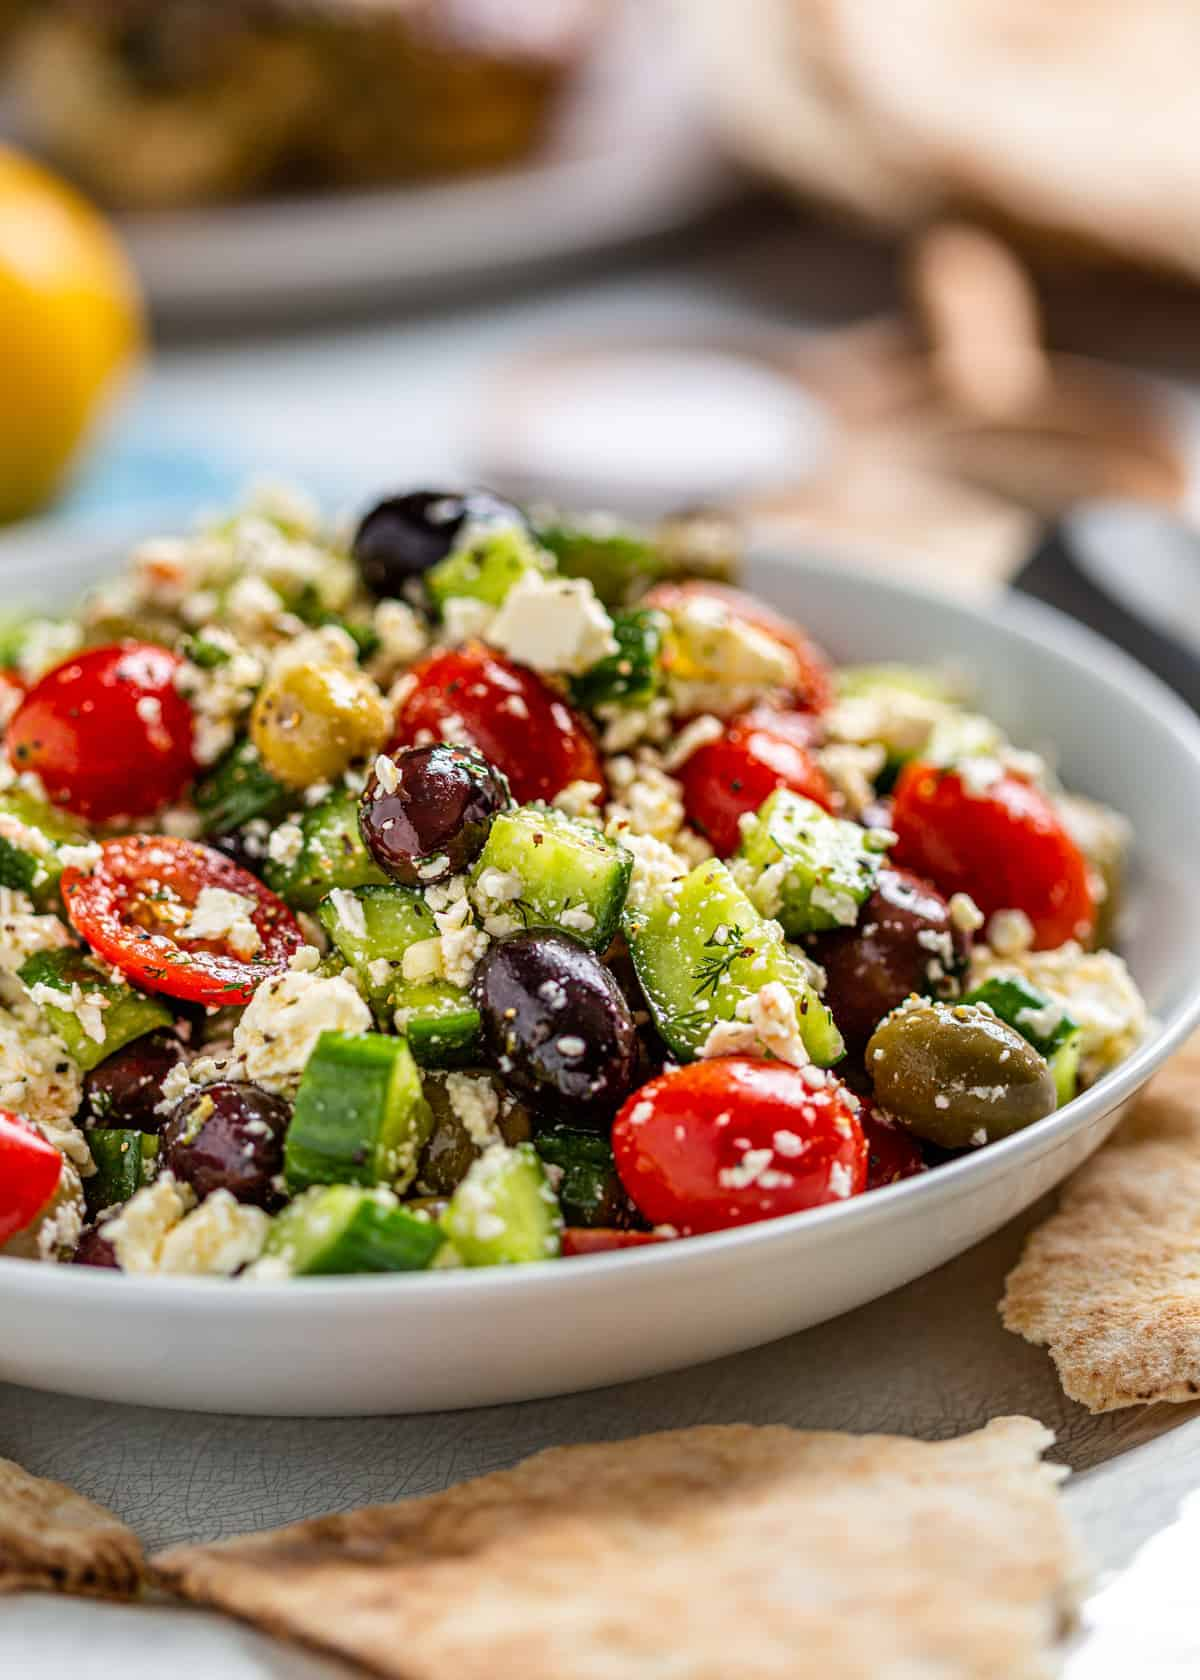 plate of healthy Mediterranean salad with olives, tomatoes, and crumbled cheese